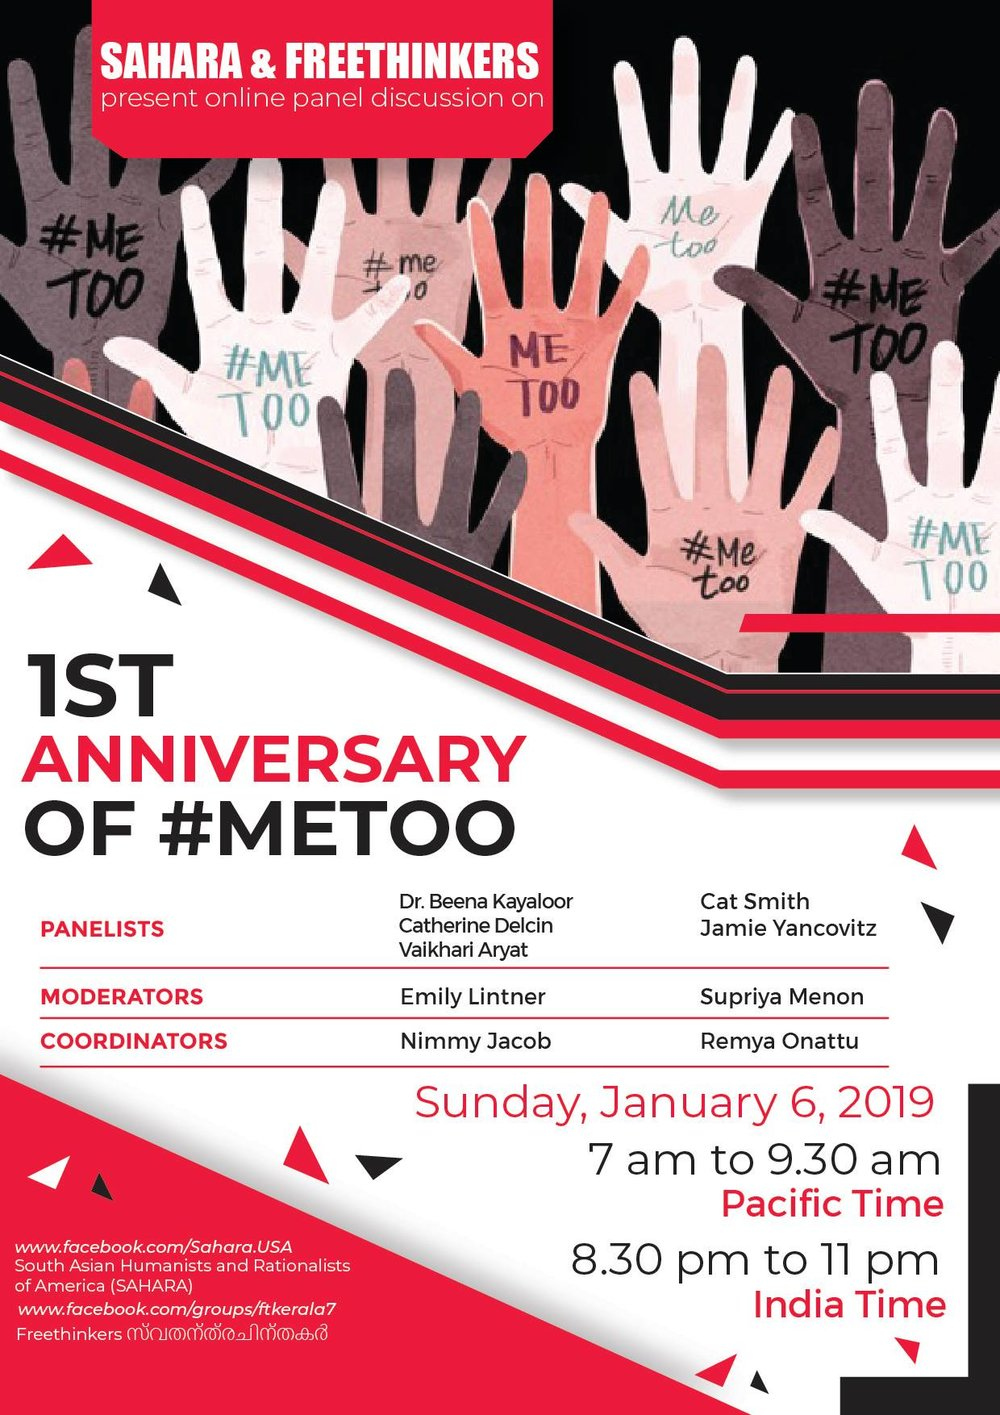 Panel Discussion on the 1st Anniversary of #MeToo - Hosted by South Asian Humanists and Rationalists of America and Freethinkers, this All Women's Panel features Survival Arts Academy Director, Jamie YancovitzDate: Sunday, January 6, 2019Time: 7:00-9:30am PSTLocation: YouTube (click for link)